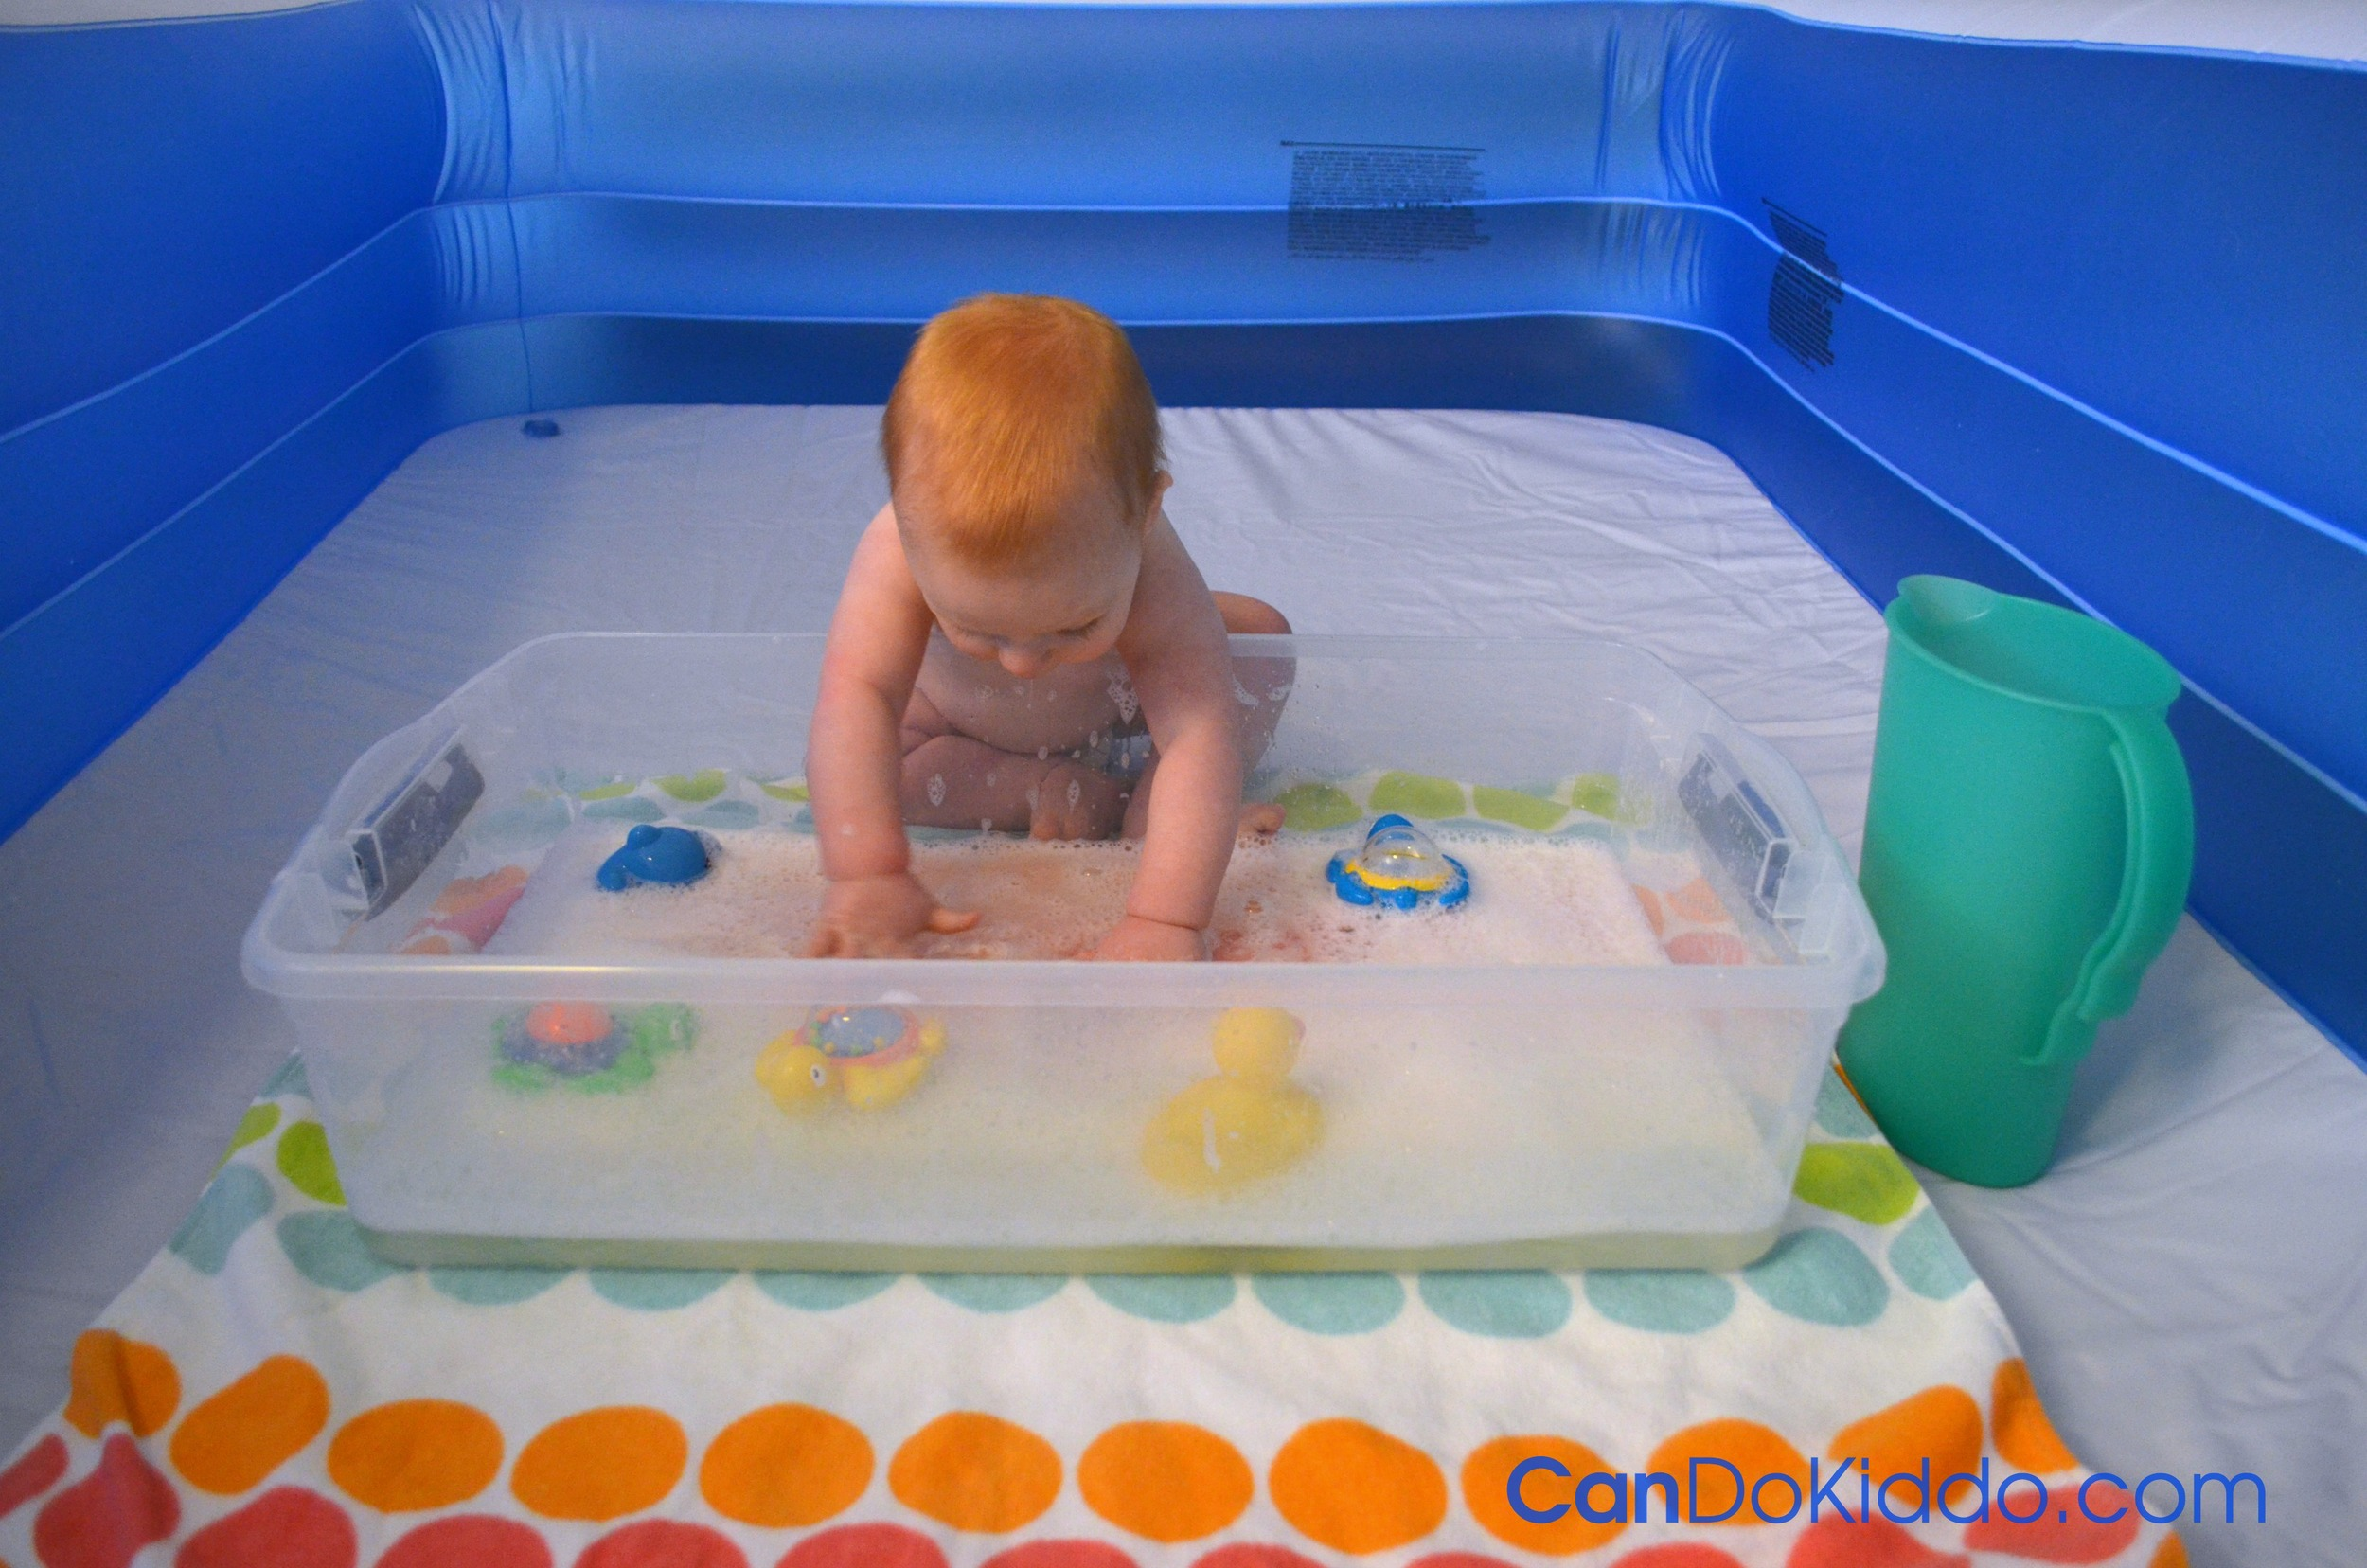 Indoor water play - another great use for a baby pool playpen. CanDo Kiddo